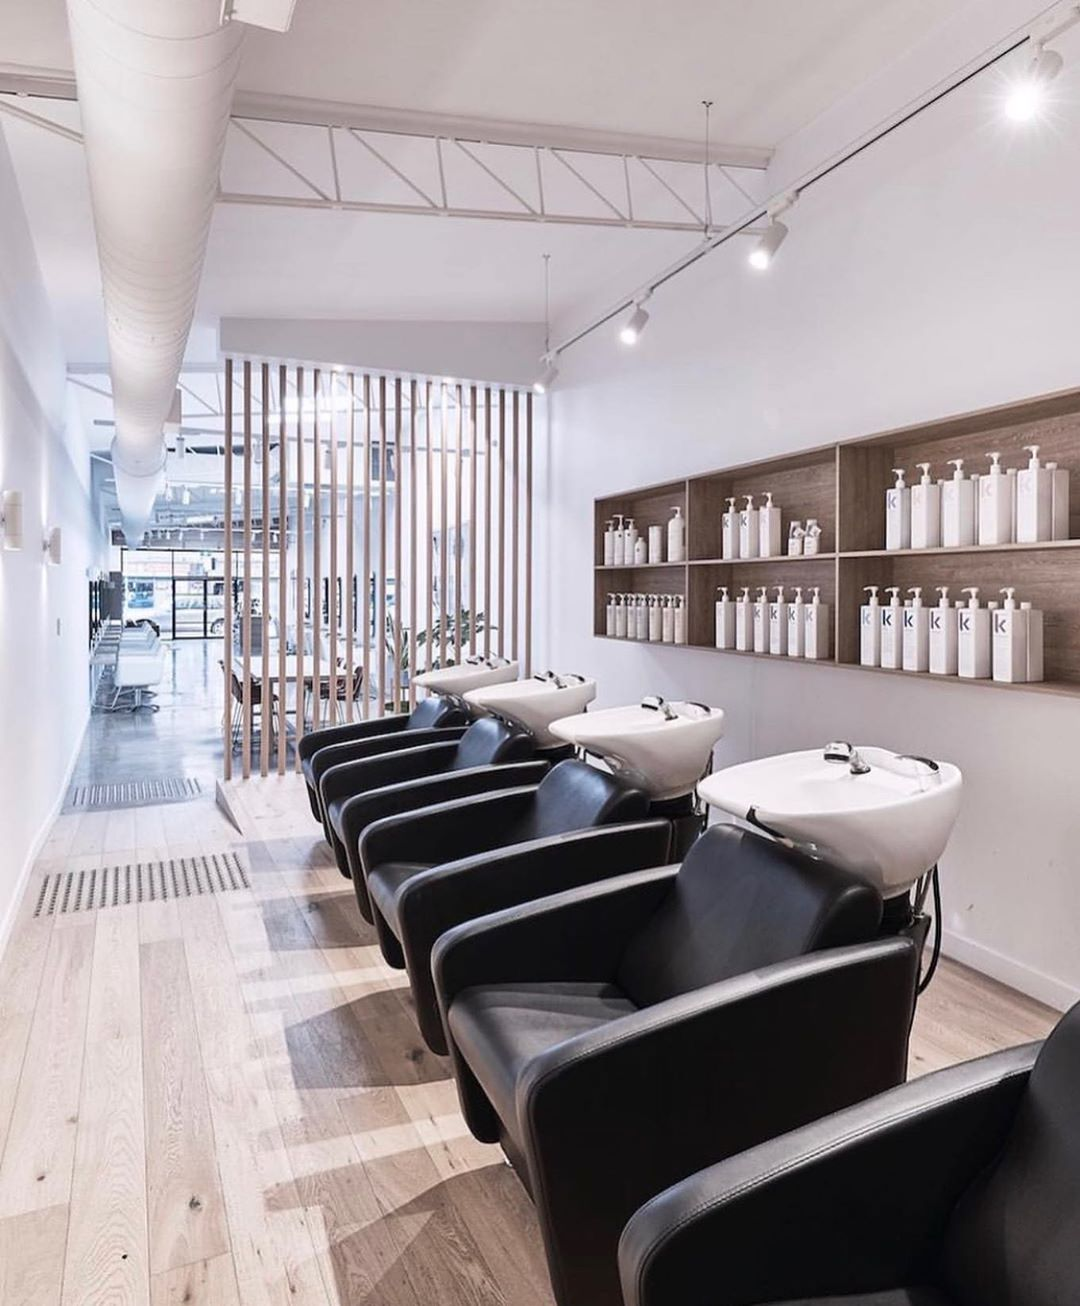 Interior of hair salon